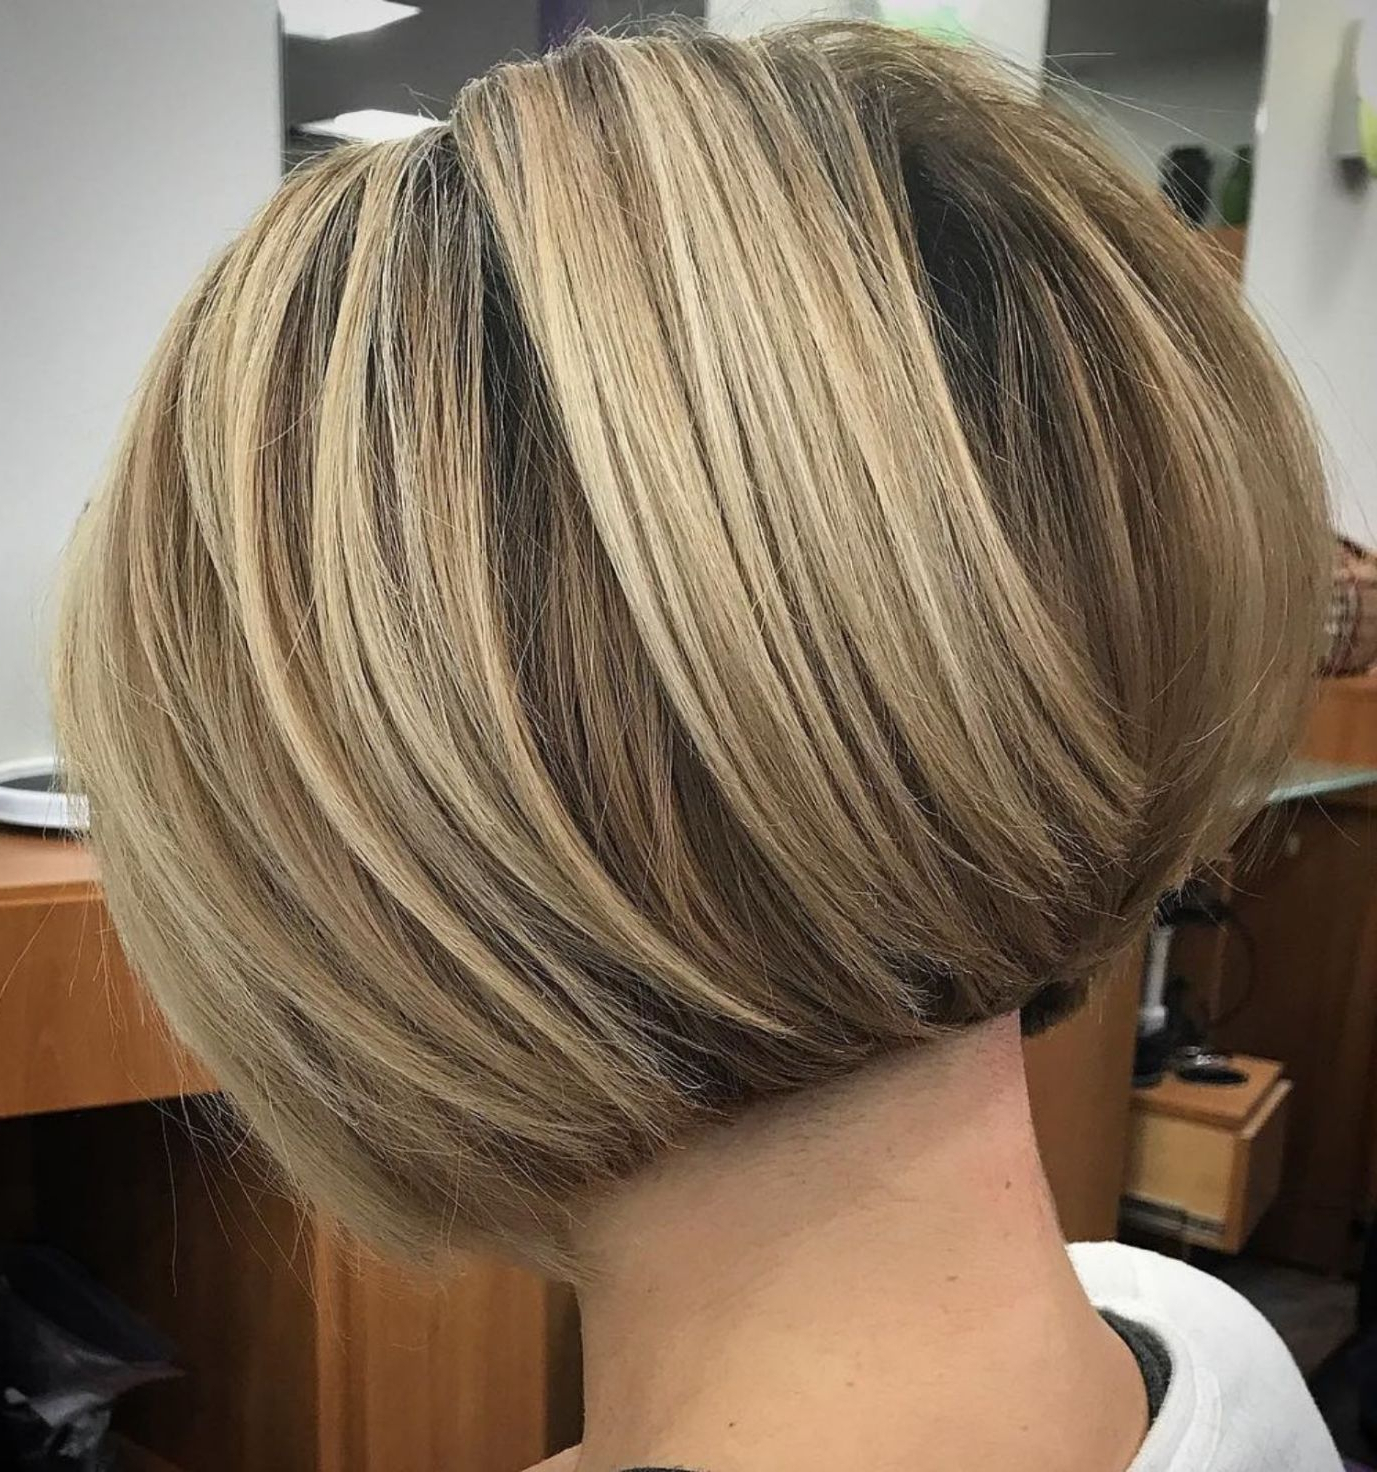 60 Classy Short Haircuts And Hairstyles For Thick Hair | Hair For Southern Belle Bob Haircuts With Gradual Layers (View 16 of 20)